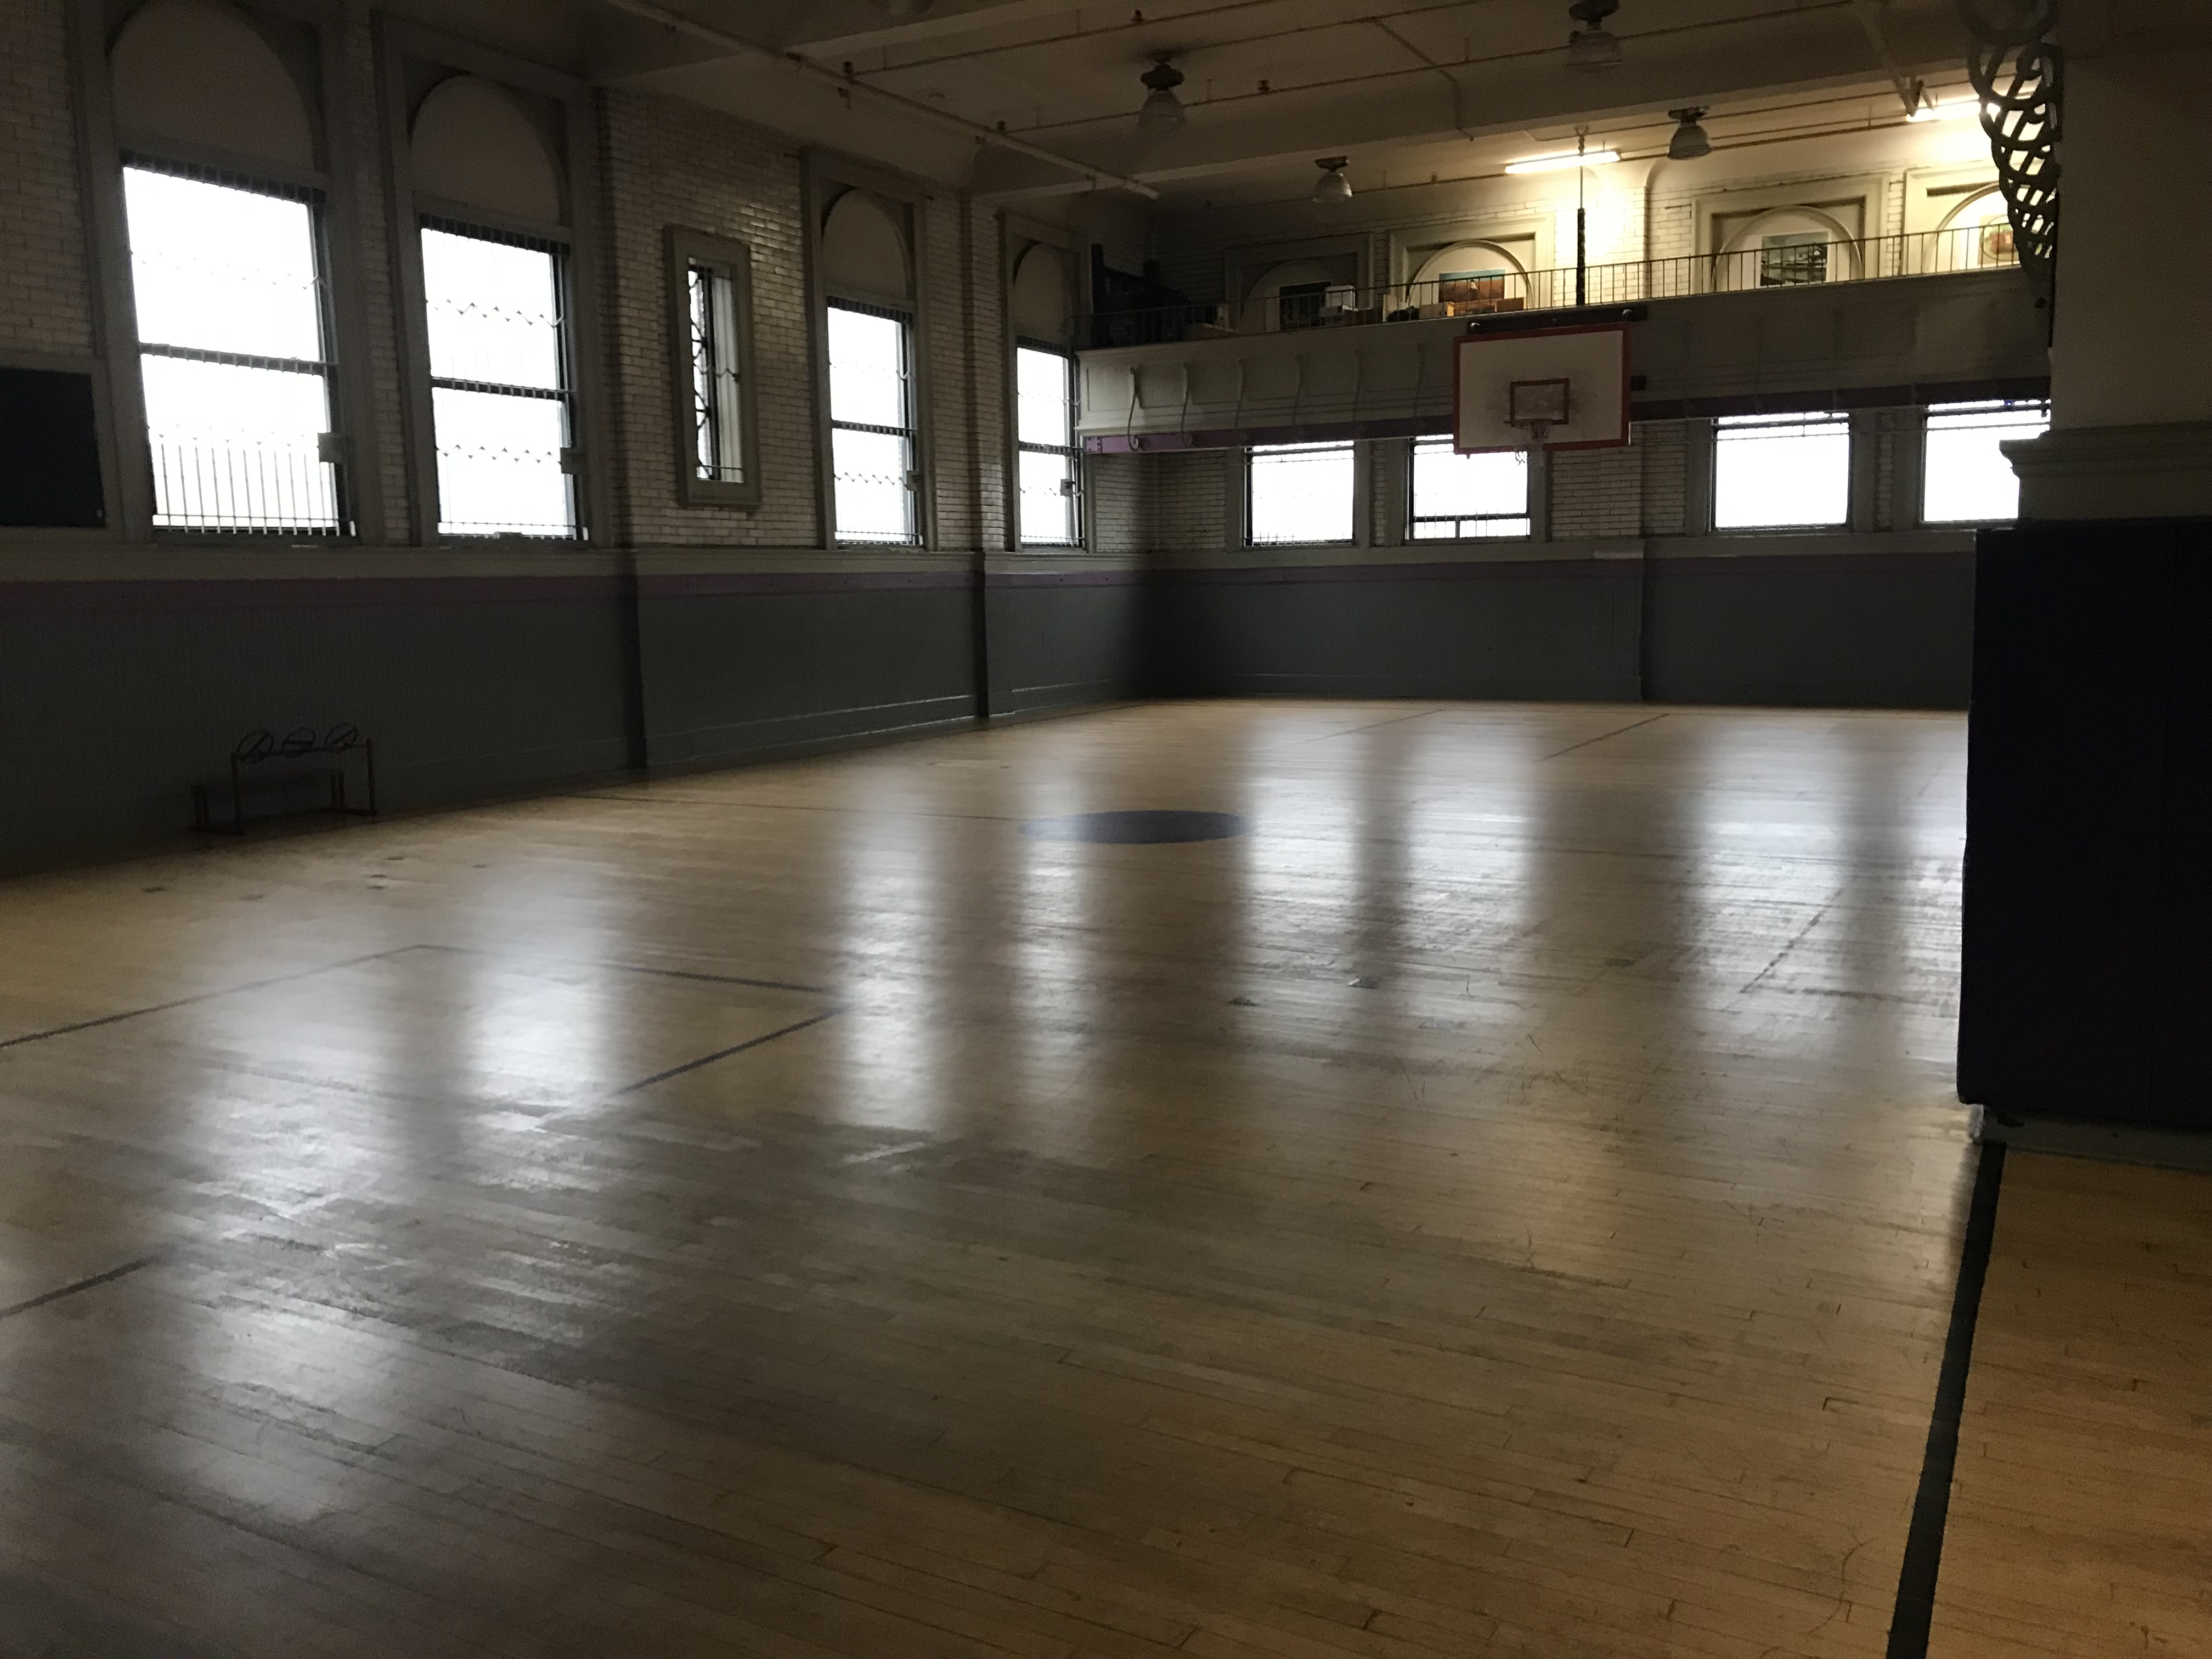 Les Location Location Details For Les Sett House Gymnasium Nyc Footy